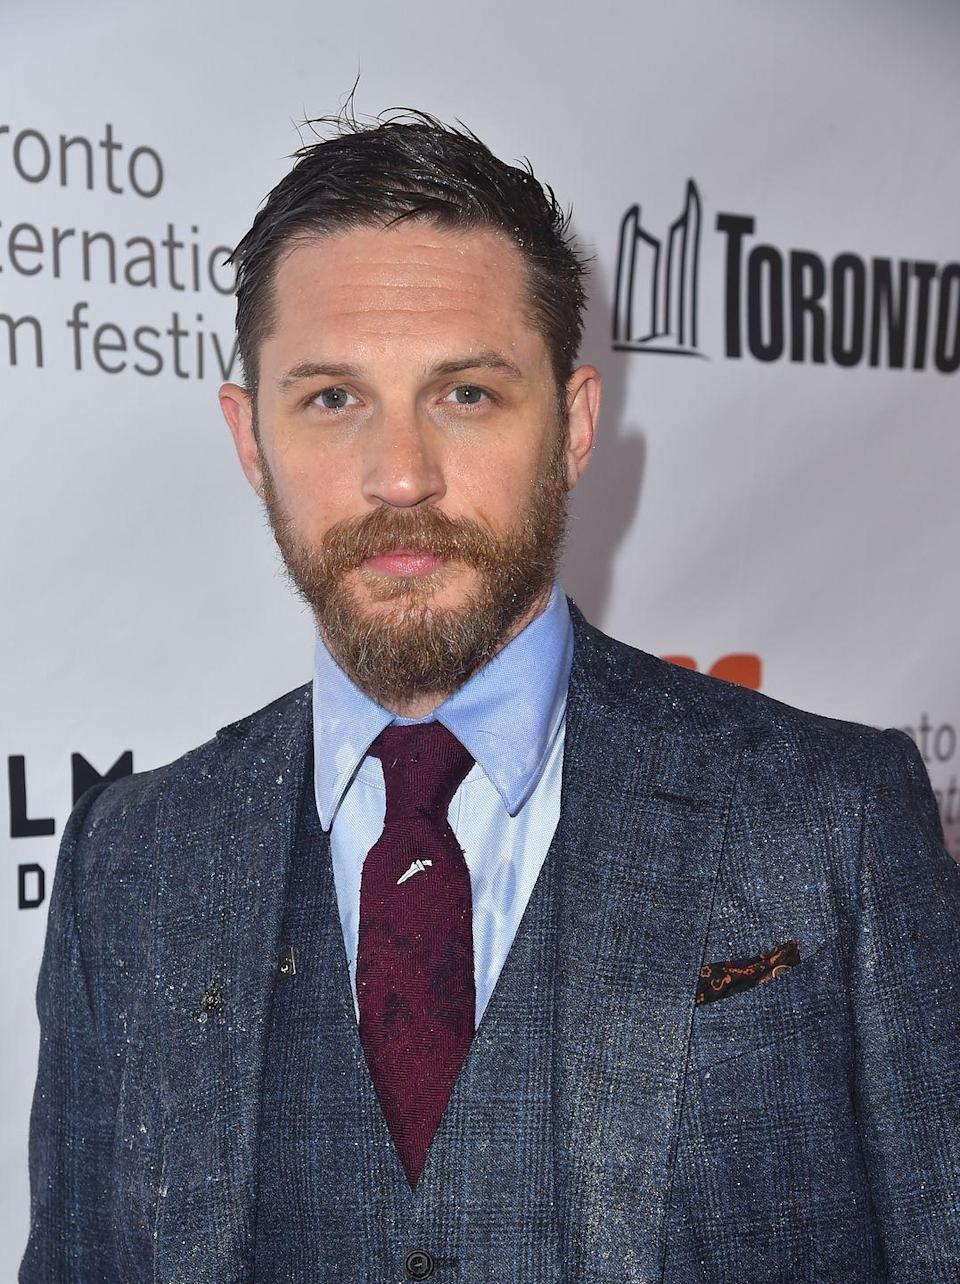 """<p>I'm going to start this pick with a qualification—if this is just going to be regular old clean shaven James Bond in a suit, don't even waste Tom Hardy's time. We don't want that. We want Tom Hardy playing a brand new, kind of messy, maybe a little bit drunk, and definitely very eccentric and chaotic take on the character. Maybe complete with a beard or <a href=""""https://www.menshealth.com/entertainment/g32627694/face-mask-icons-tv-movie-characters/"""" rel=""""nofollow noopener"""" target=""""_blank"""" data-ylk=""""slk:some sort of mask"""" class=""""link rapid-noclick-resp"""">some sort of mask</a>. Because why have Tom Hardy in your movie if you're not going to let him do his Tom Hardy thing? —ER</p>"""